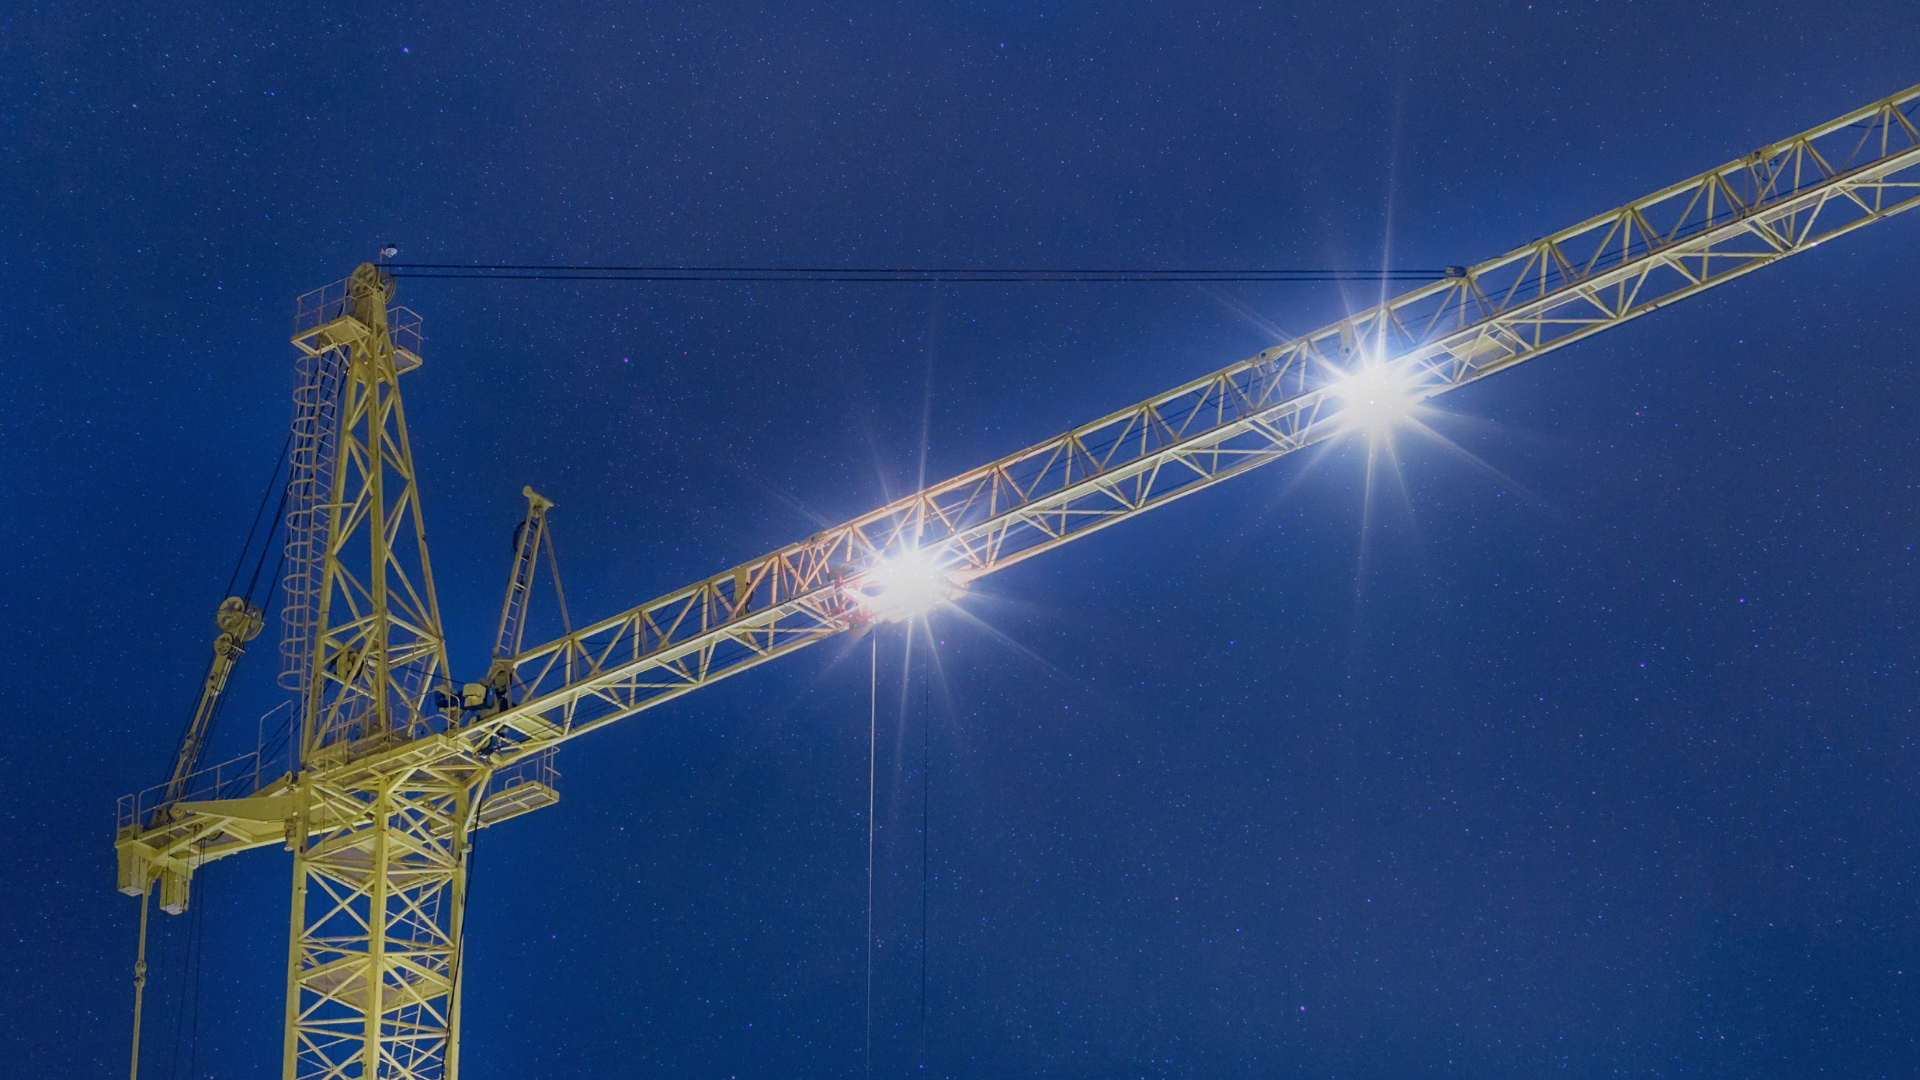 Timed dimming of crane lights